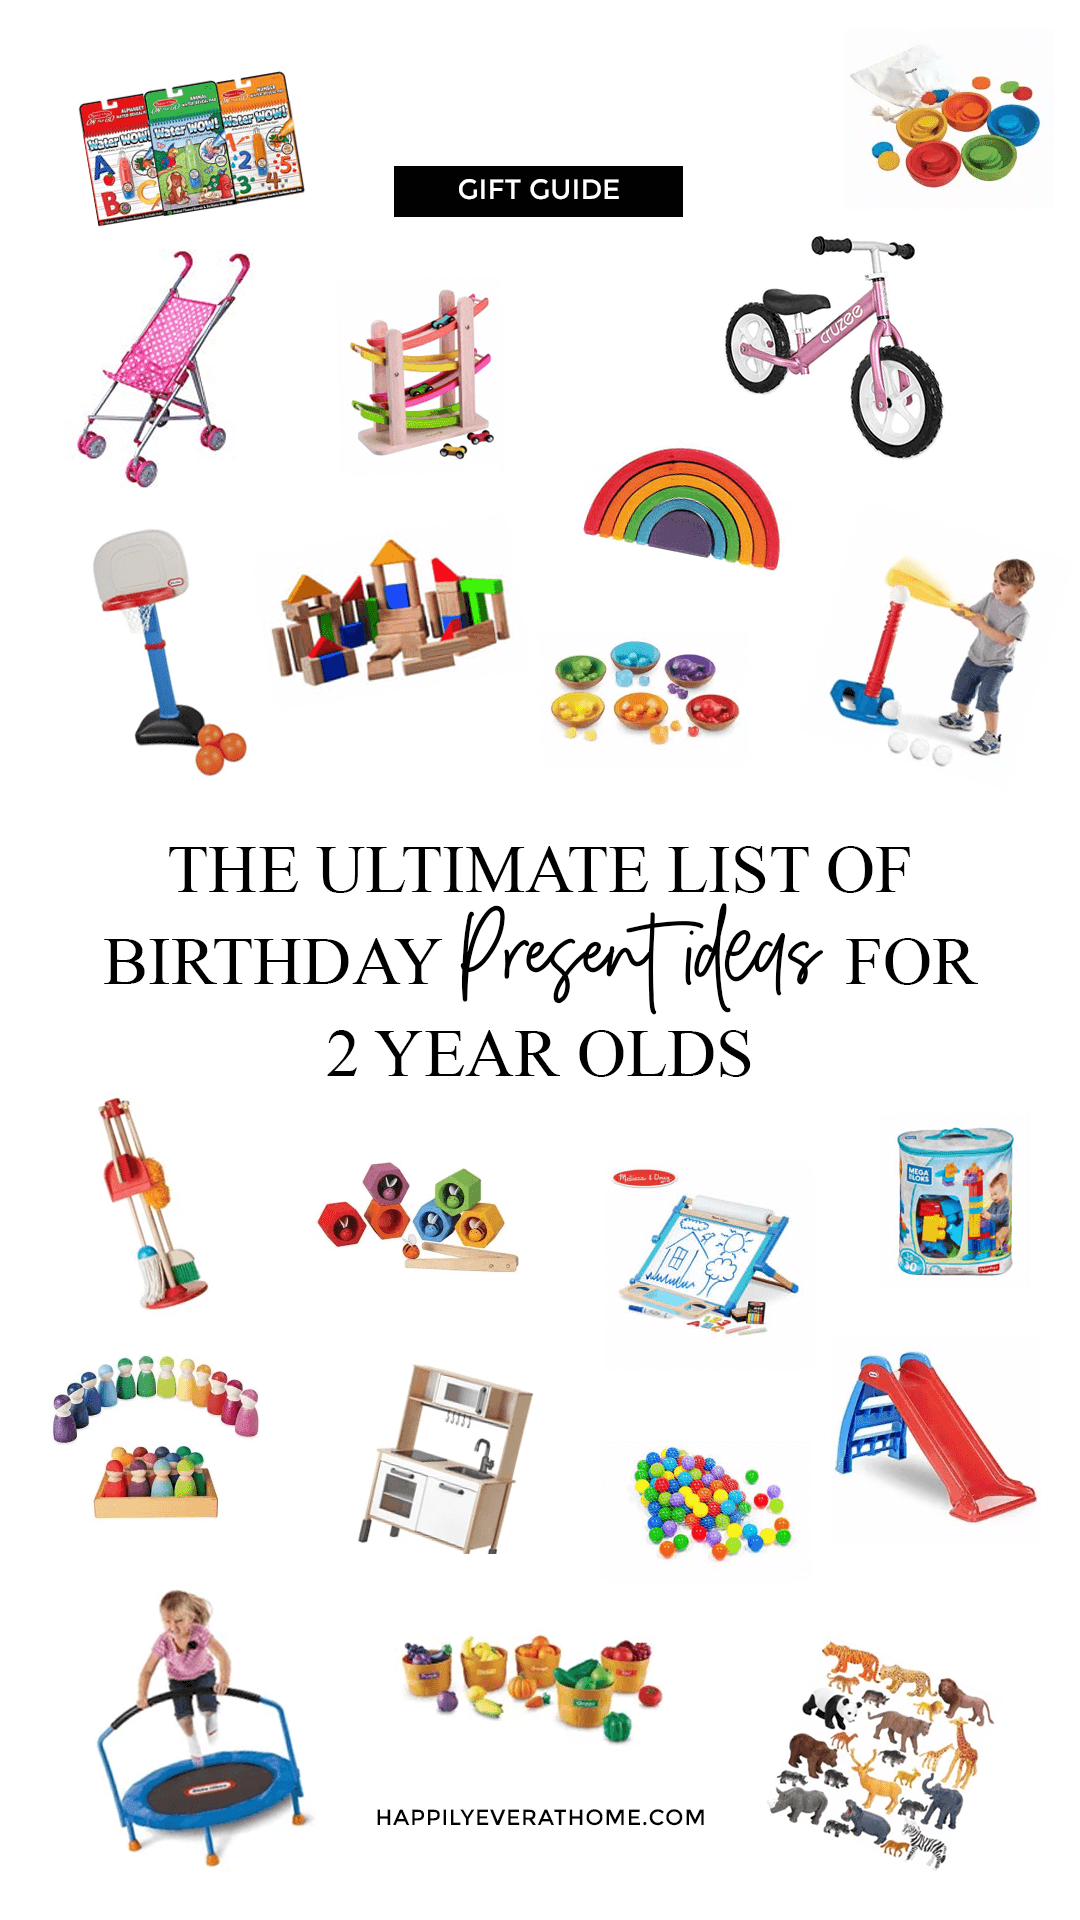 Collage of gift ideas for 2 year olds